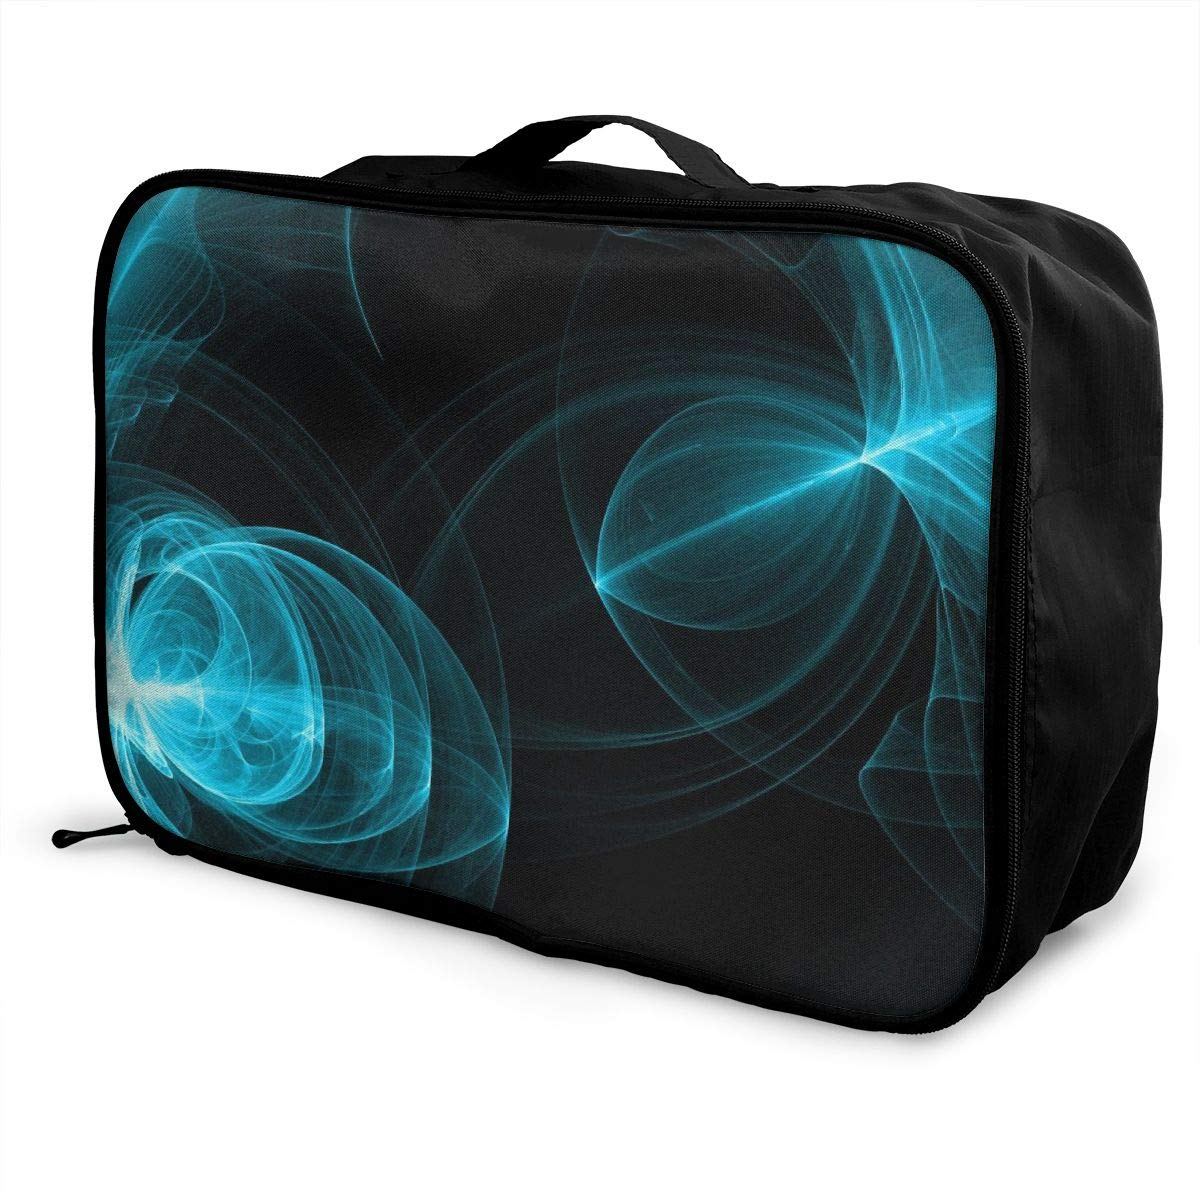 Natural Art Creation Travel Lightweight Waterproof Foldable Storage Carry Luggage Large Capacity Portable Luggage Bag Duffel Bag